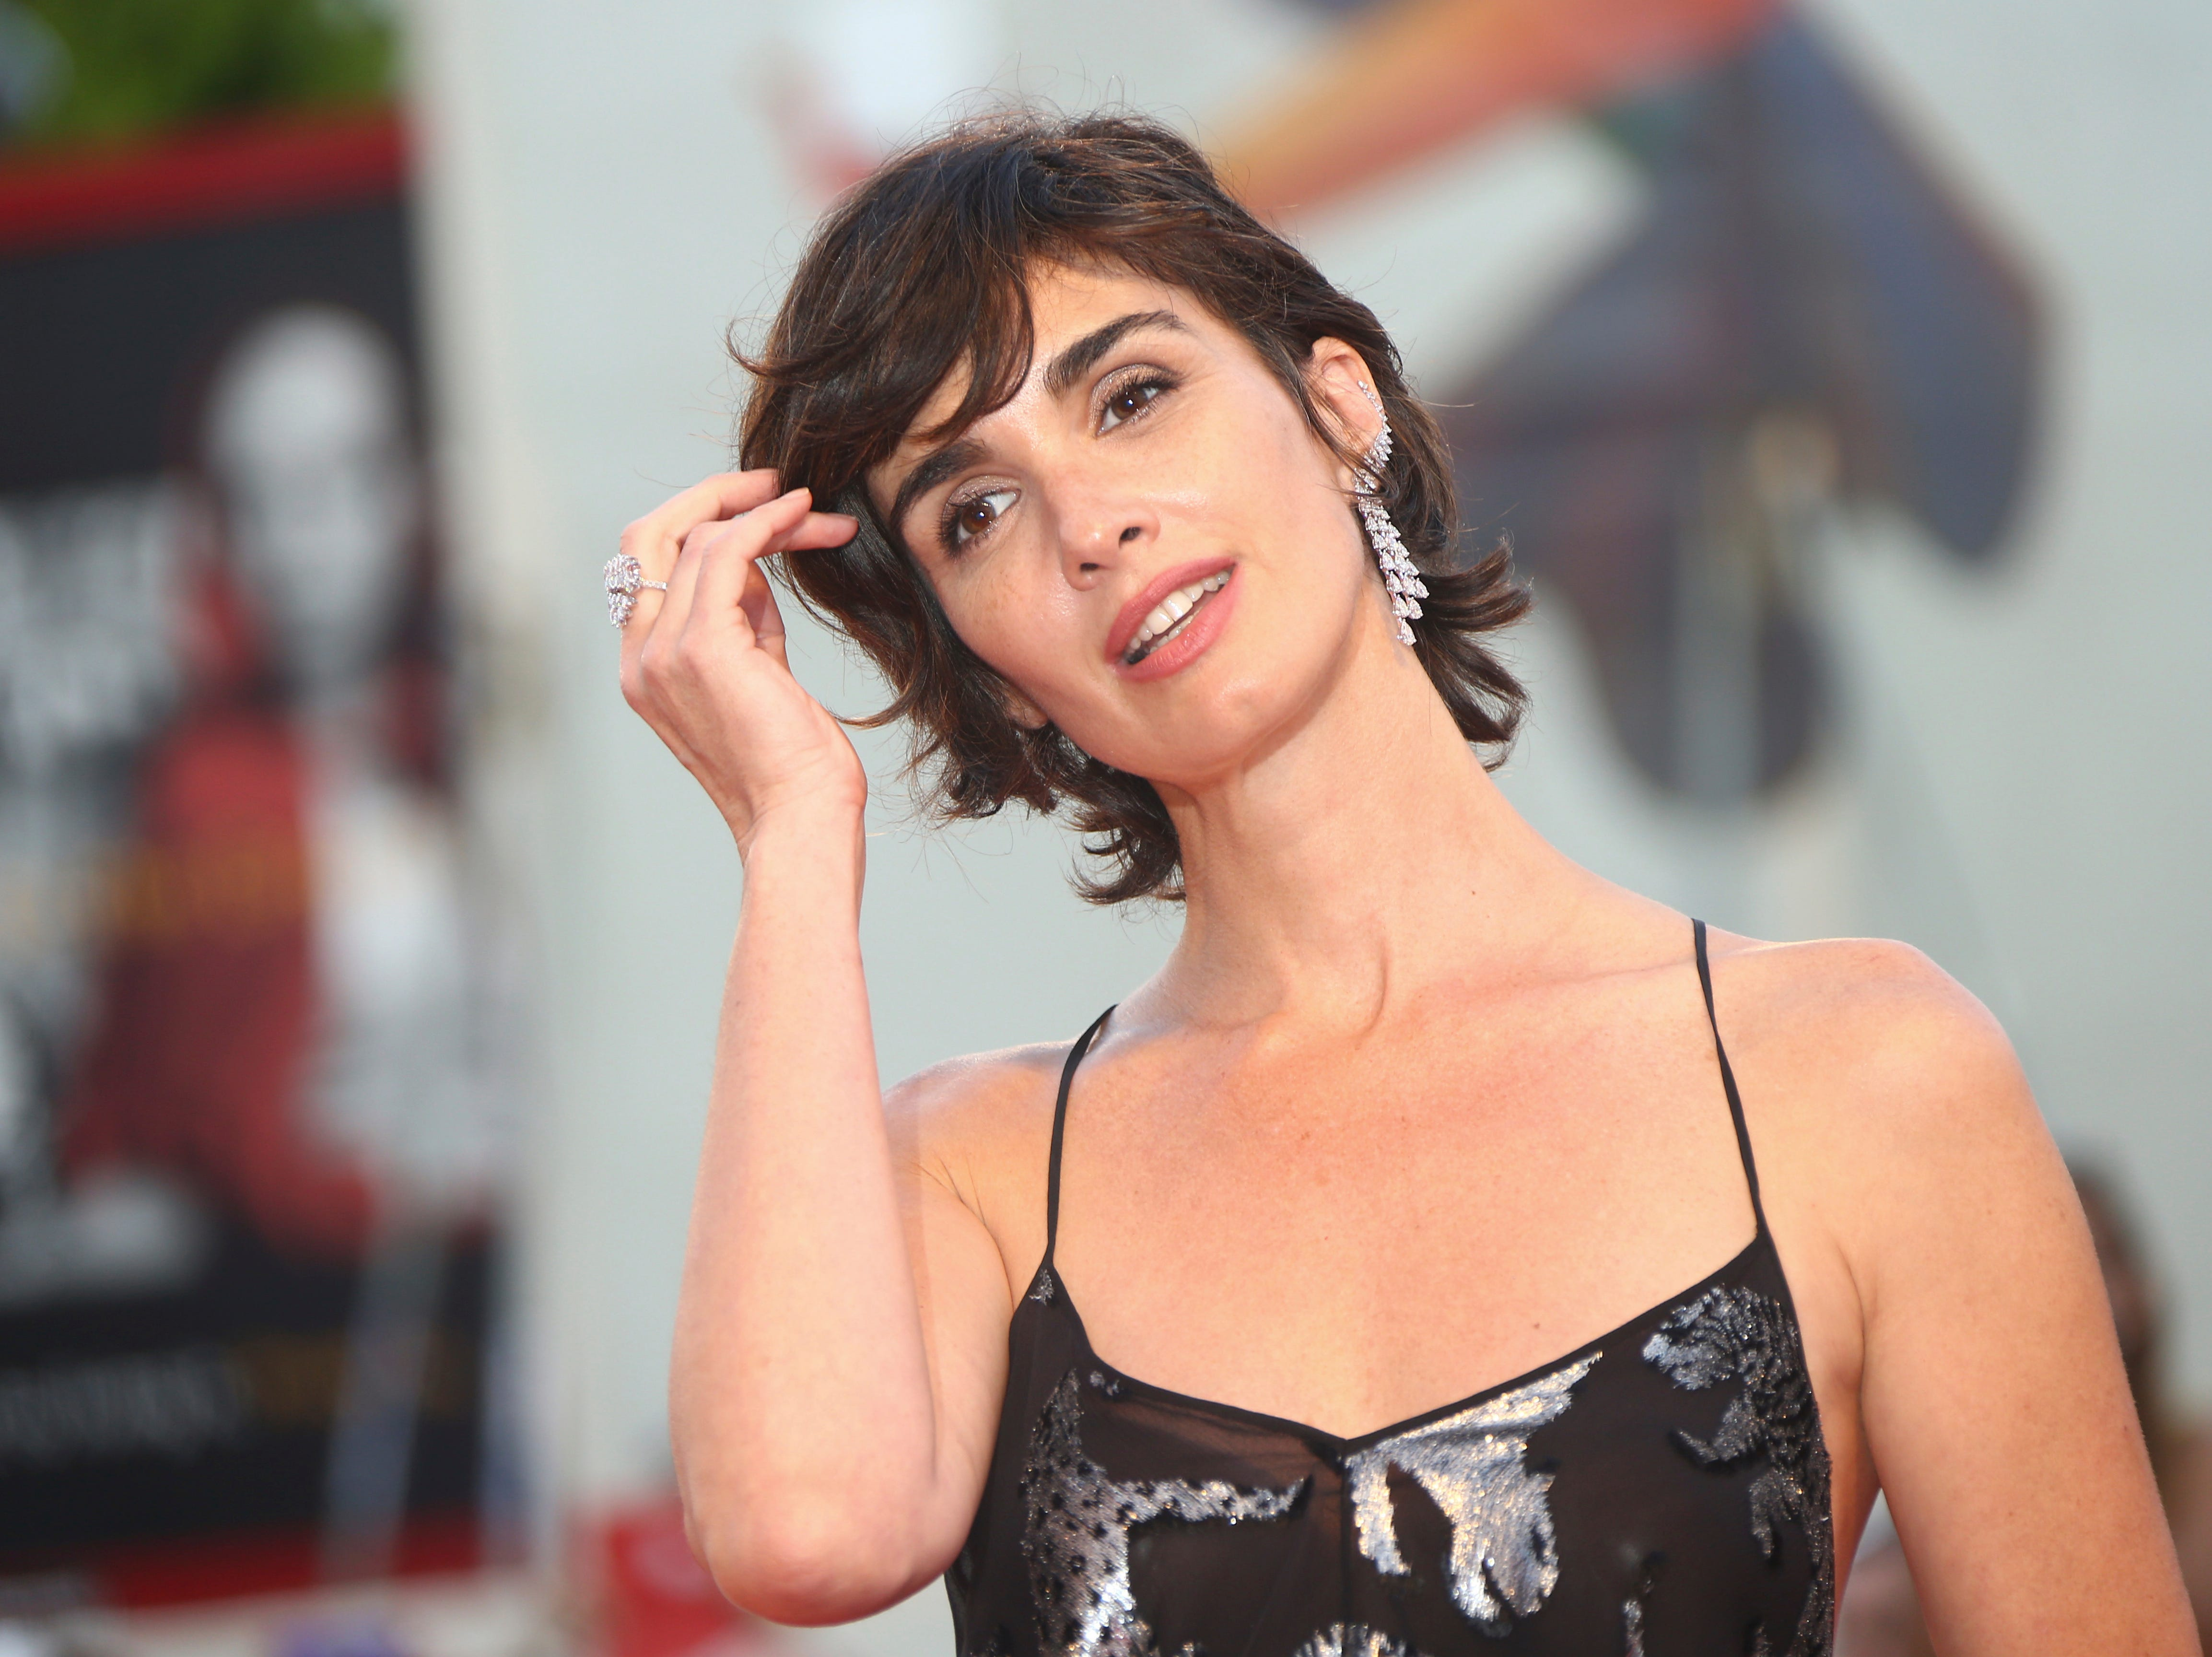 Actress Paz Vega poses for photographers at the premiere of the film 'Roma ' at the 75th edition of the Venice Film Festival in Venice, Italy, Thursday, Aug. 30, 2018. (Photo by Joel C Ryan/Invision/AP) ORG XMIT: LENT184